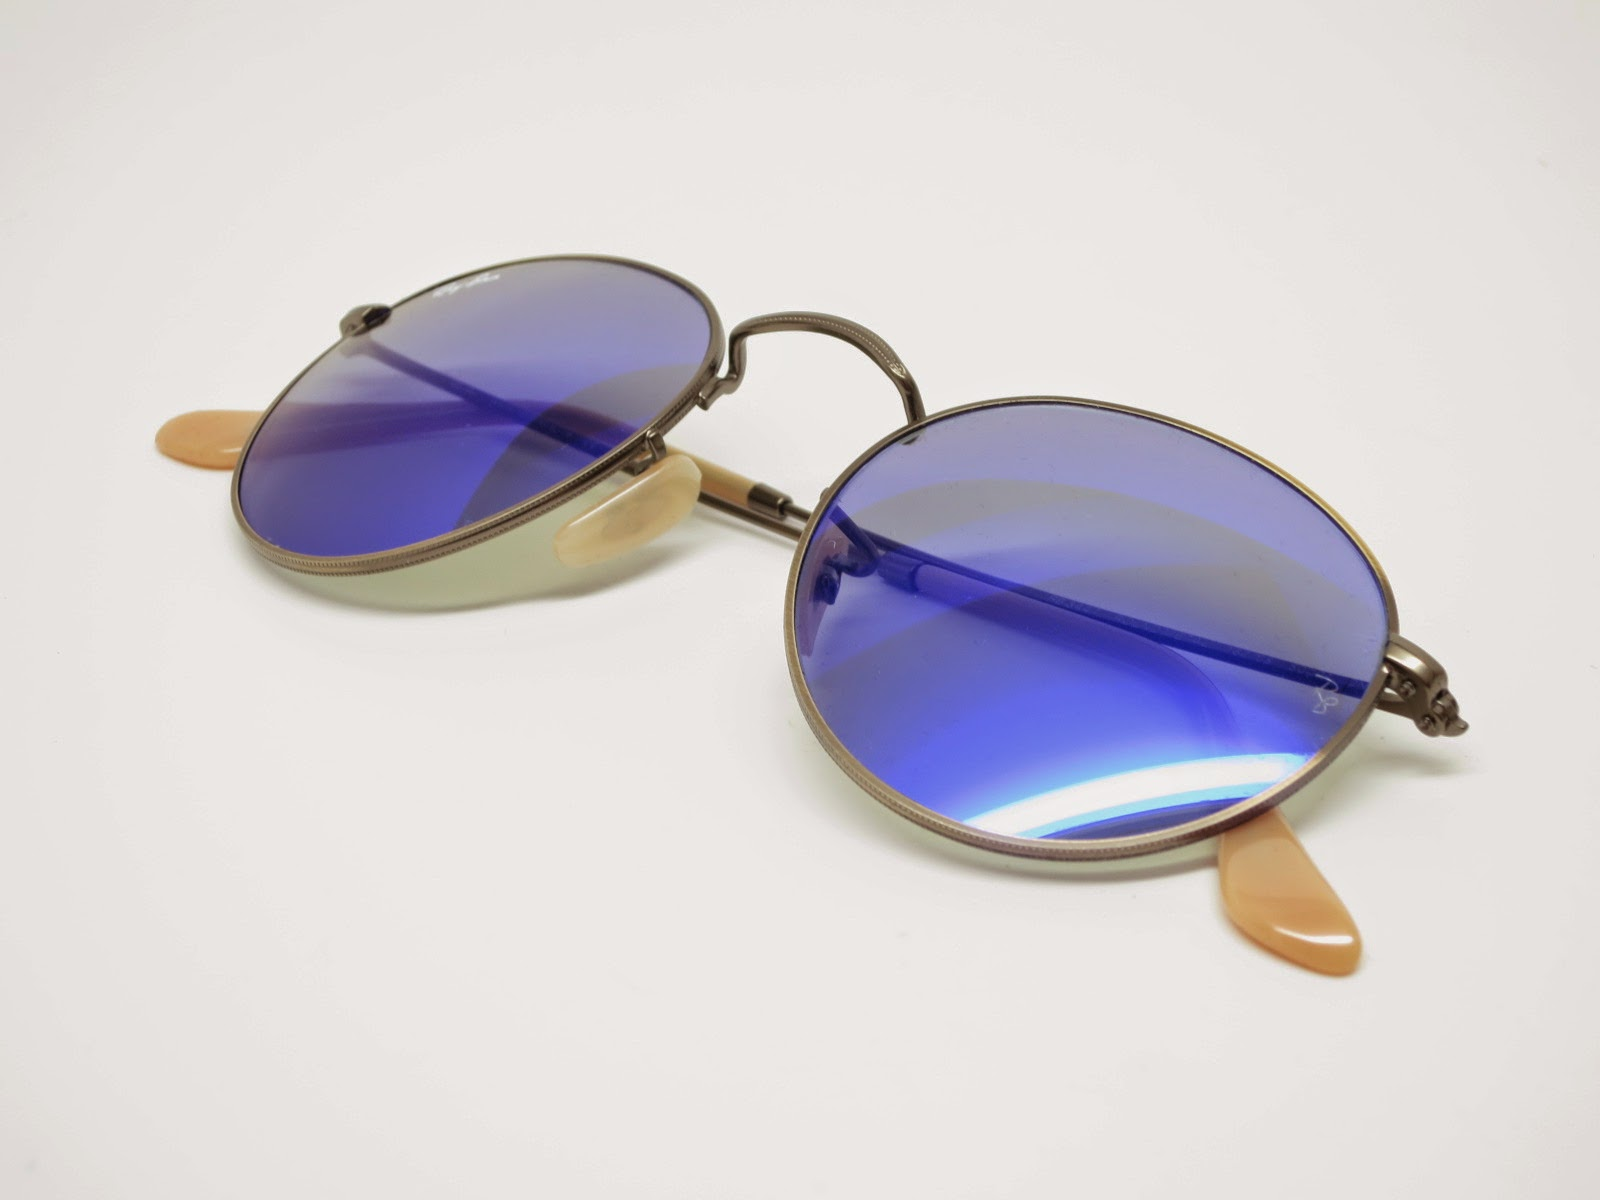 d463e665ac2 Ray-Ban RB 3447 Round Metal 167 68 Blue Mirrored Sunglasses